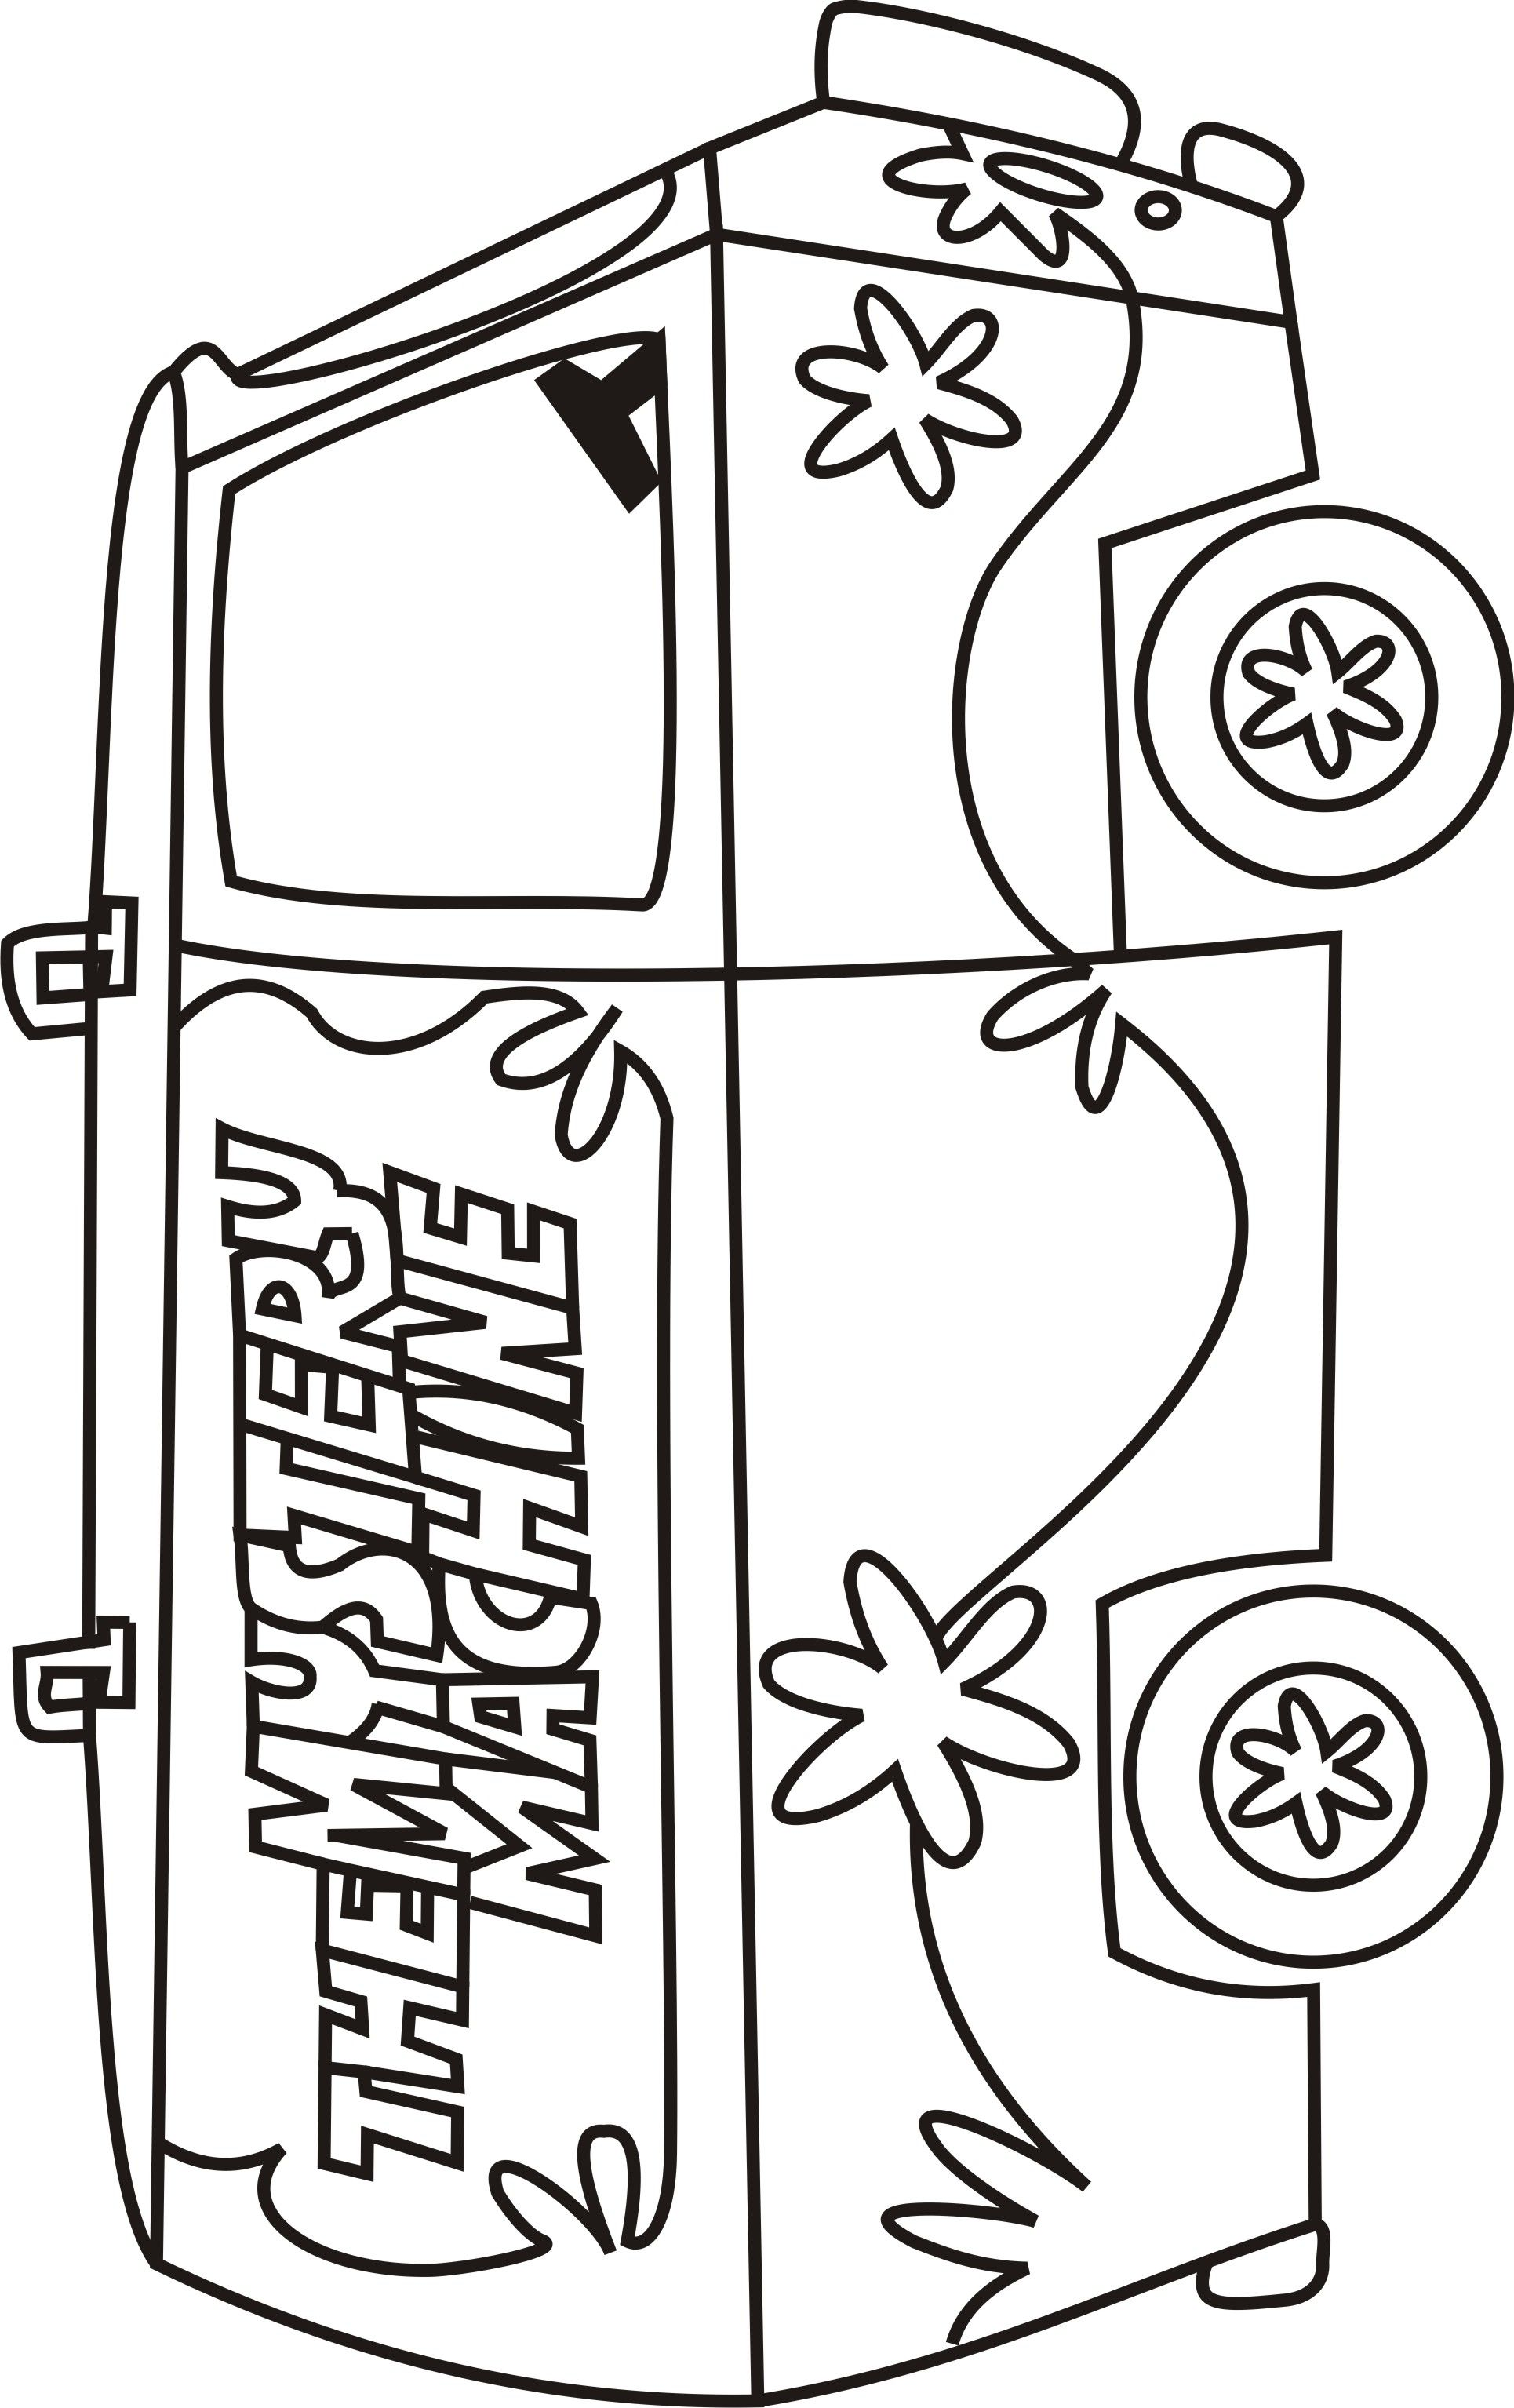 Scooby doo mystery machine coloring pages scooby doo for Mystery picture coloring pages